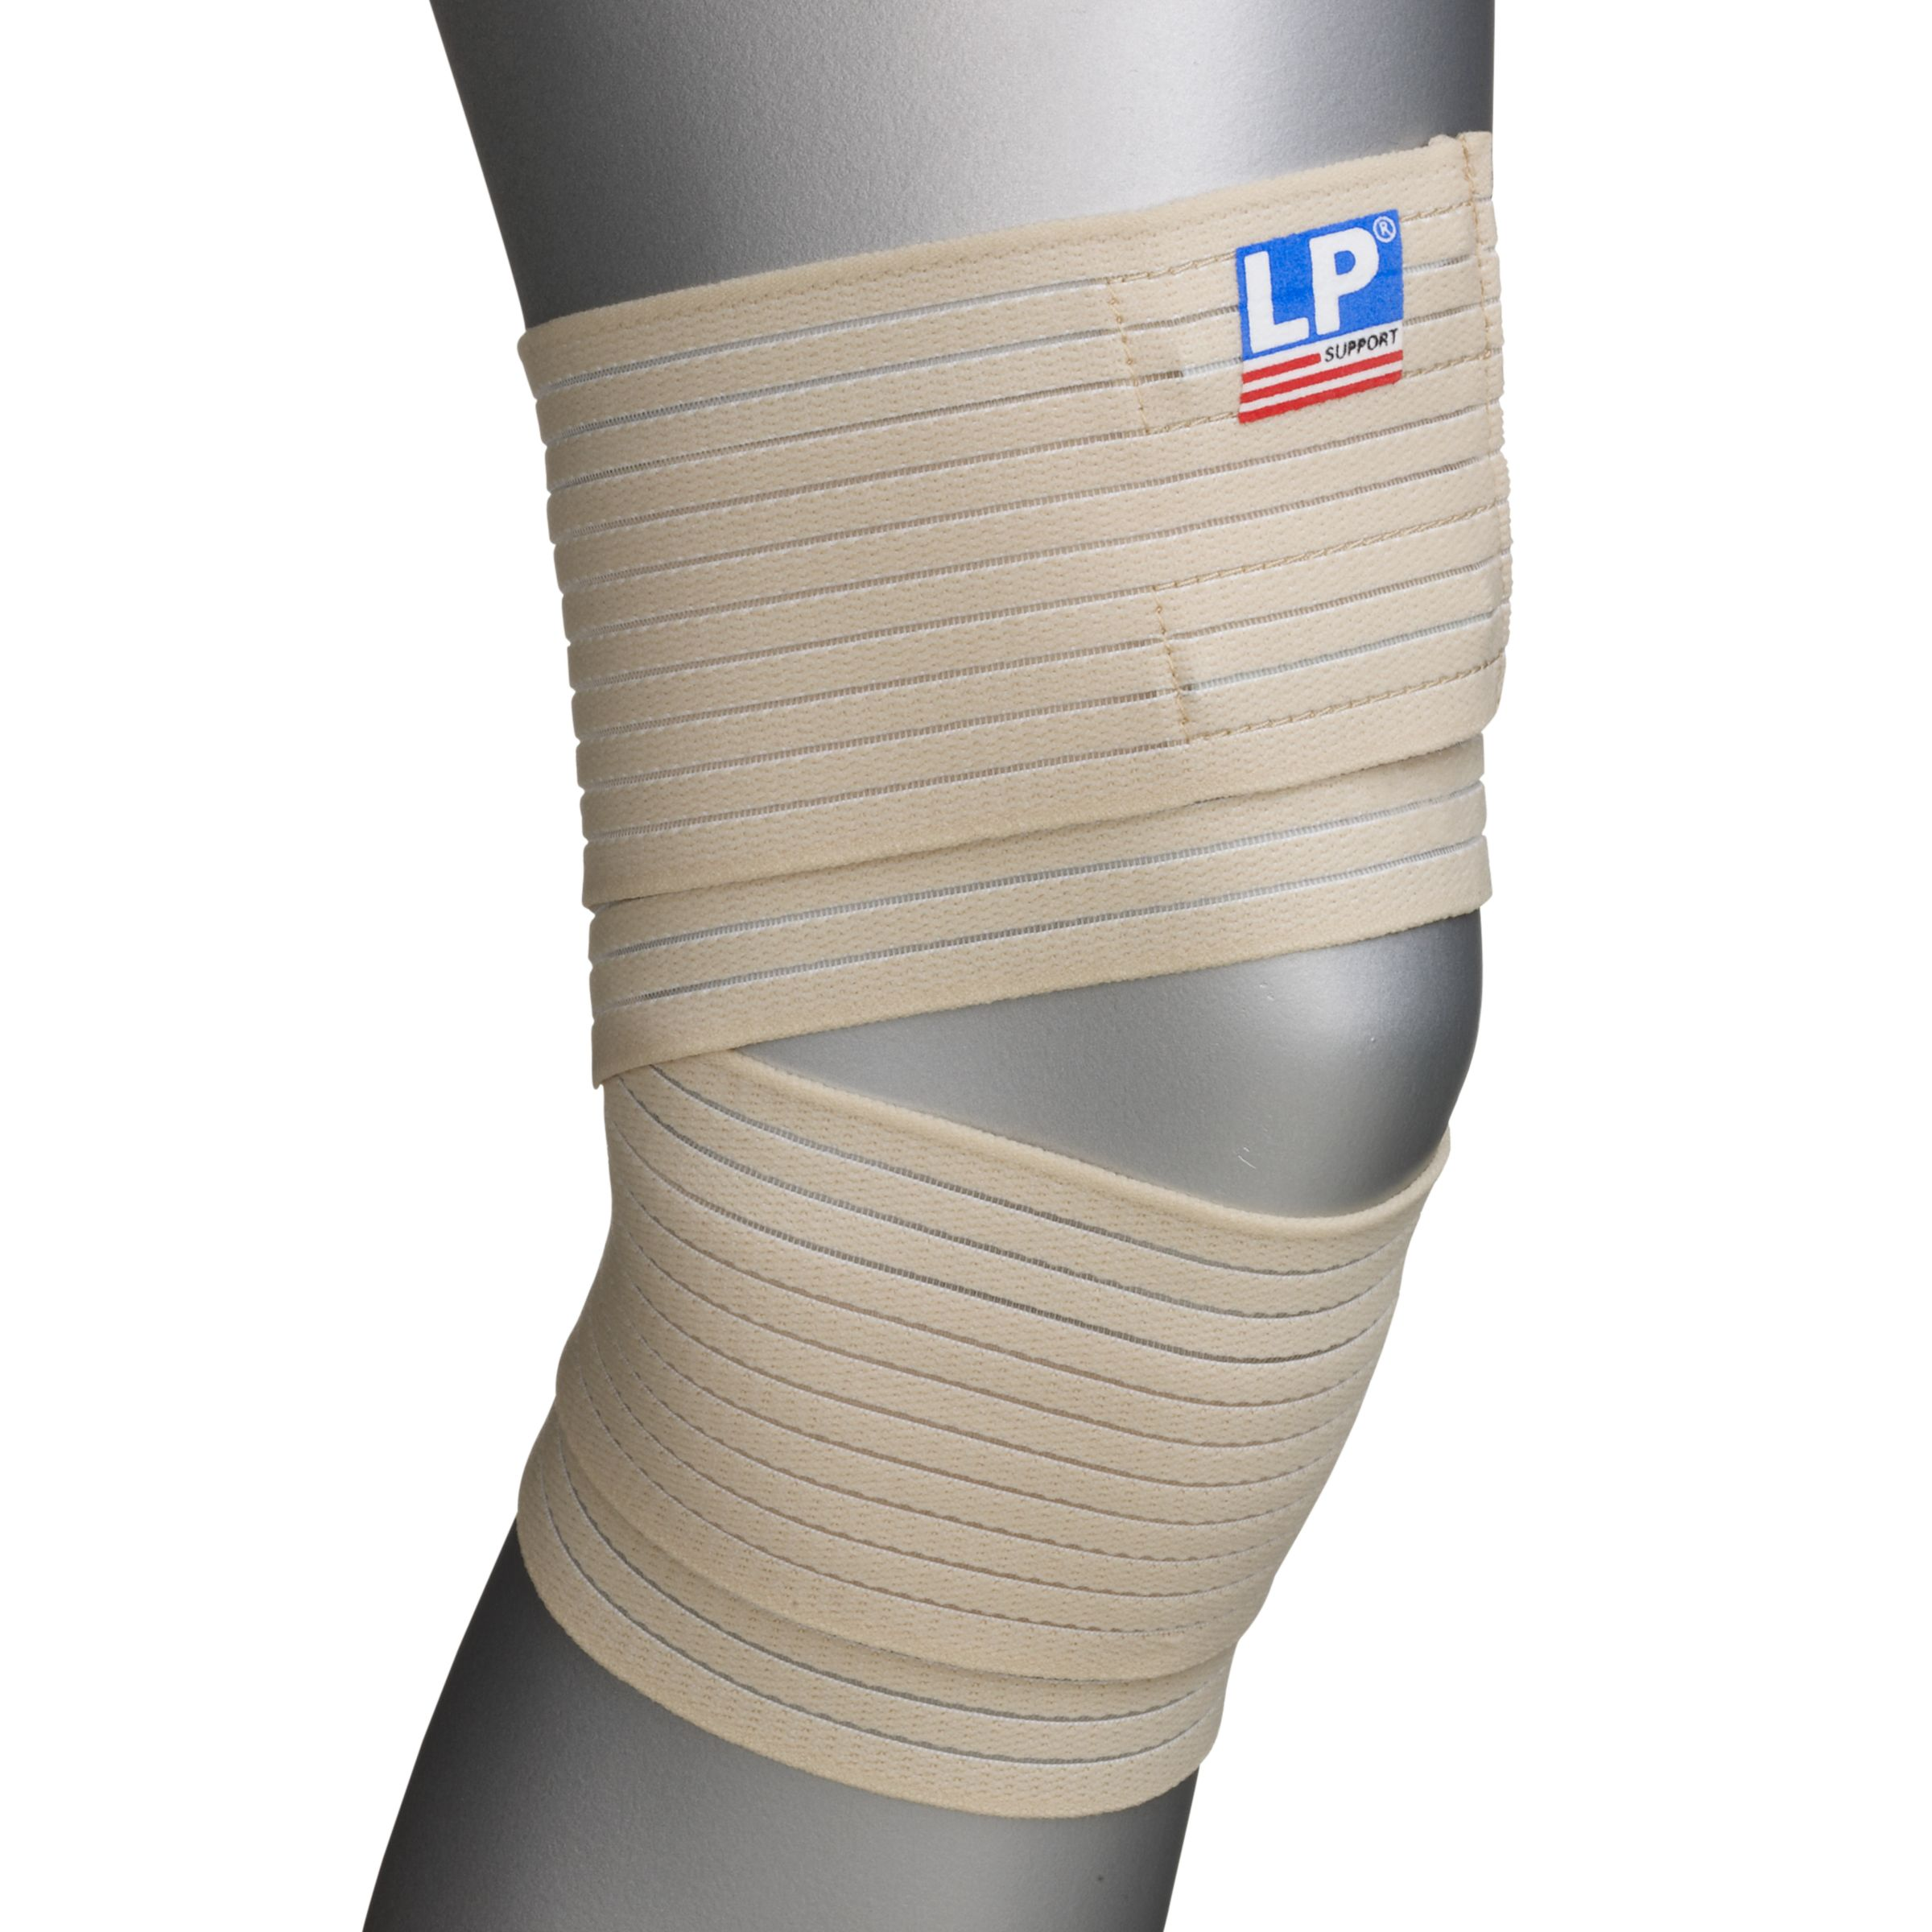 Lp Supports LP Supports Knee Wrap, One Size